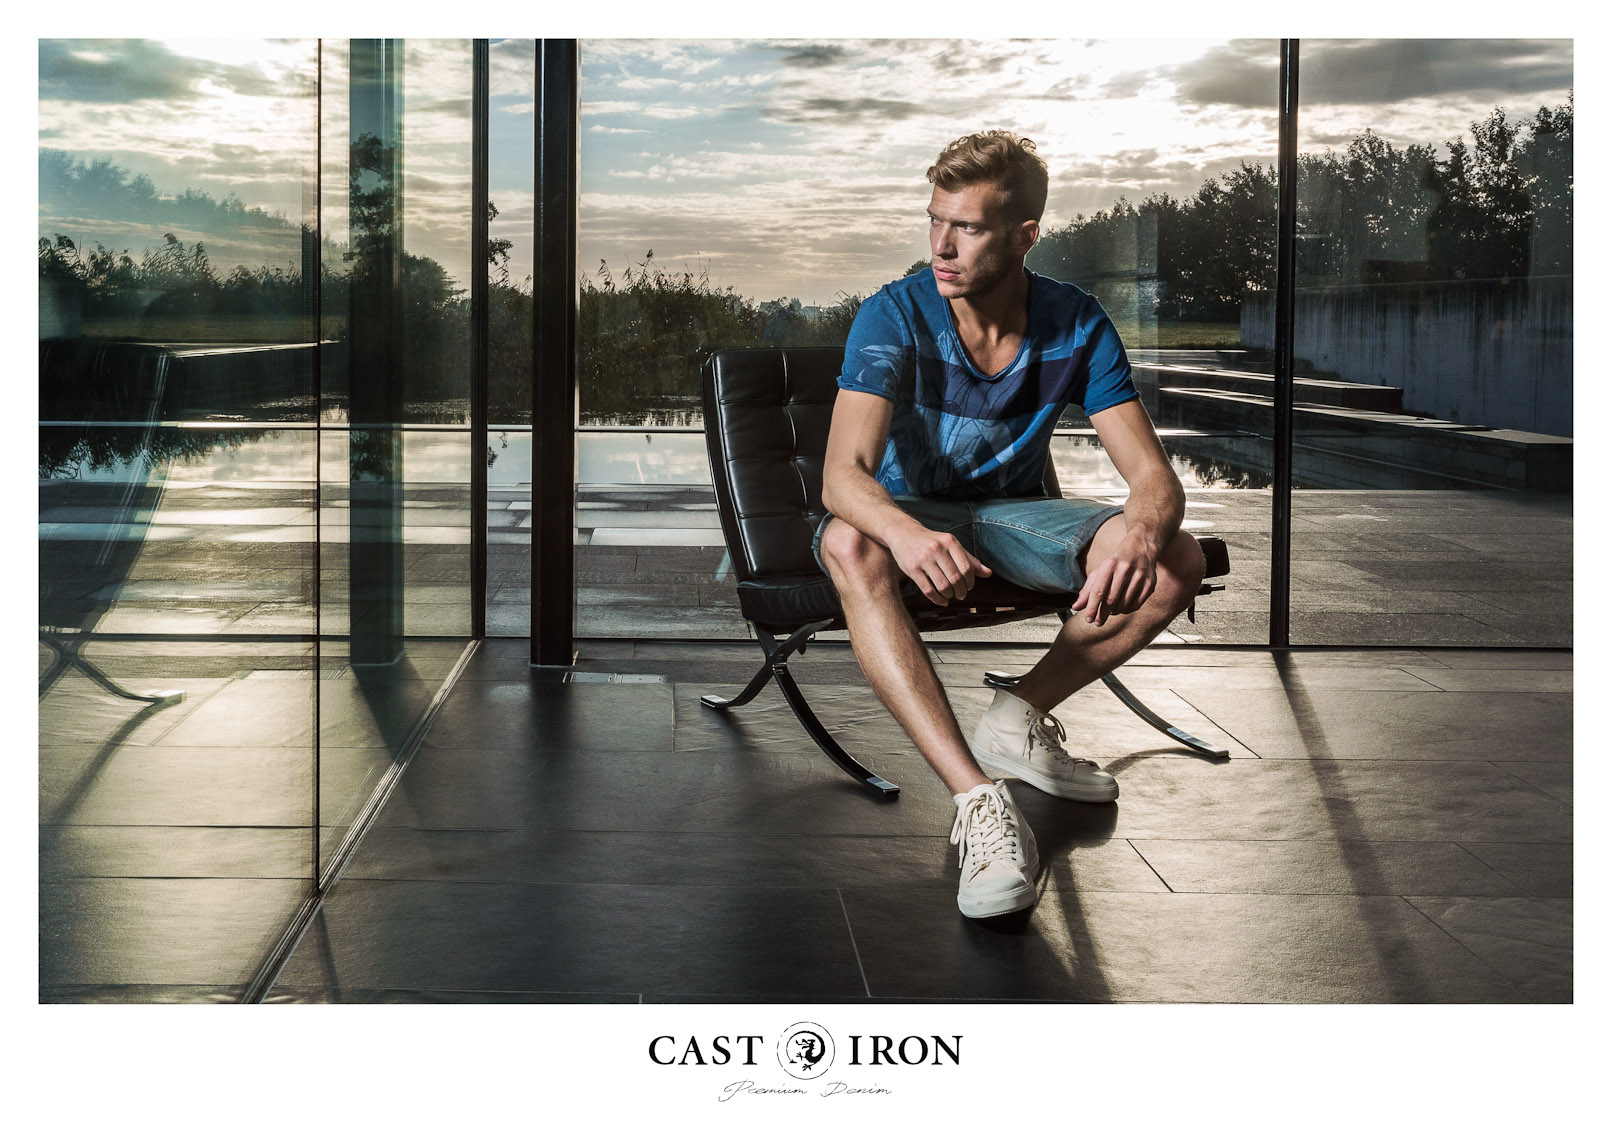 Witman Kleipool | Ruud Baan | Cast iron Denim Met Layout05